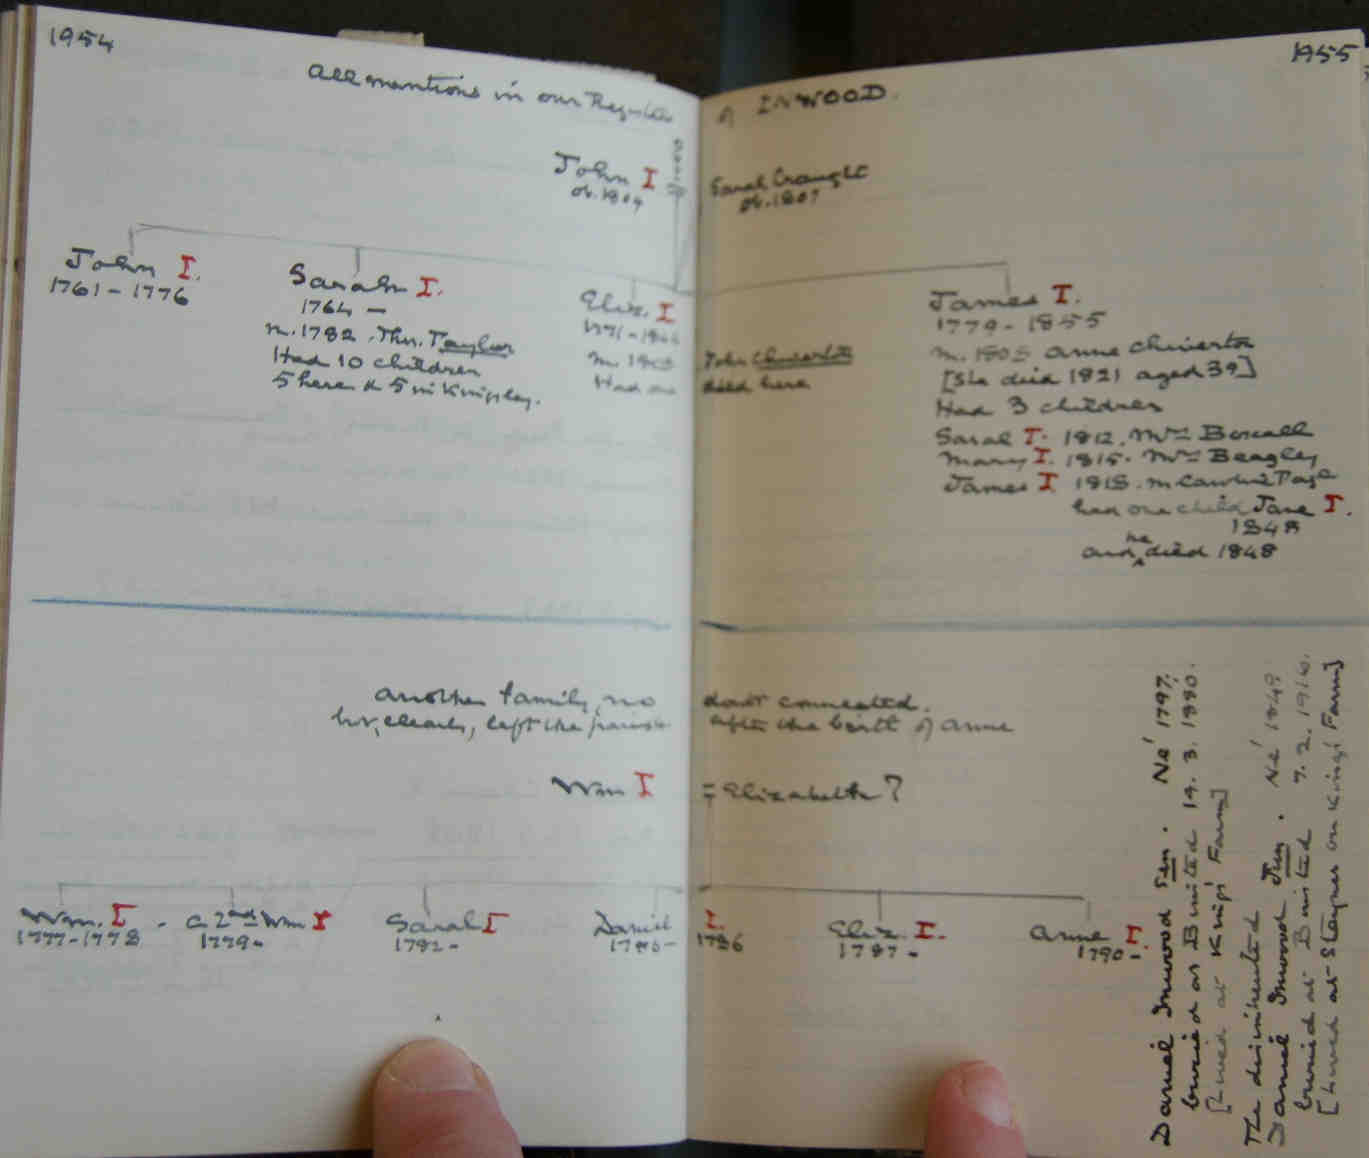 Rev Laverty Notebooks | Headley, Hampshire, UK